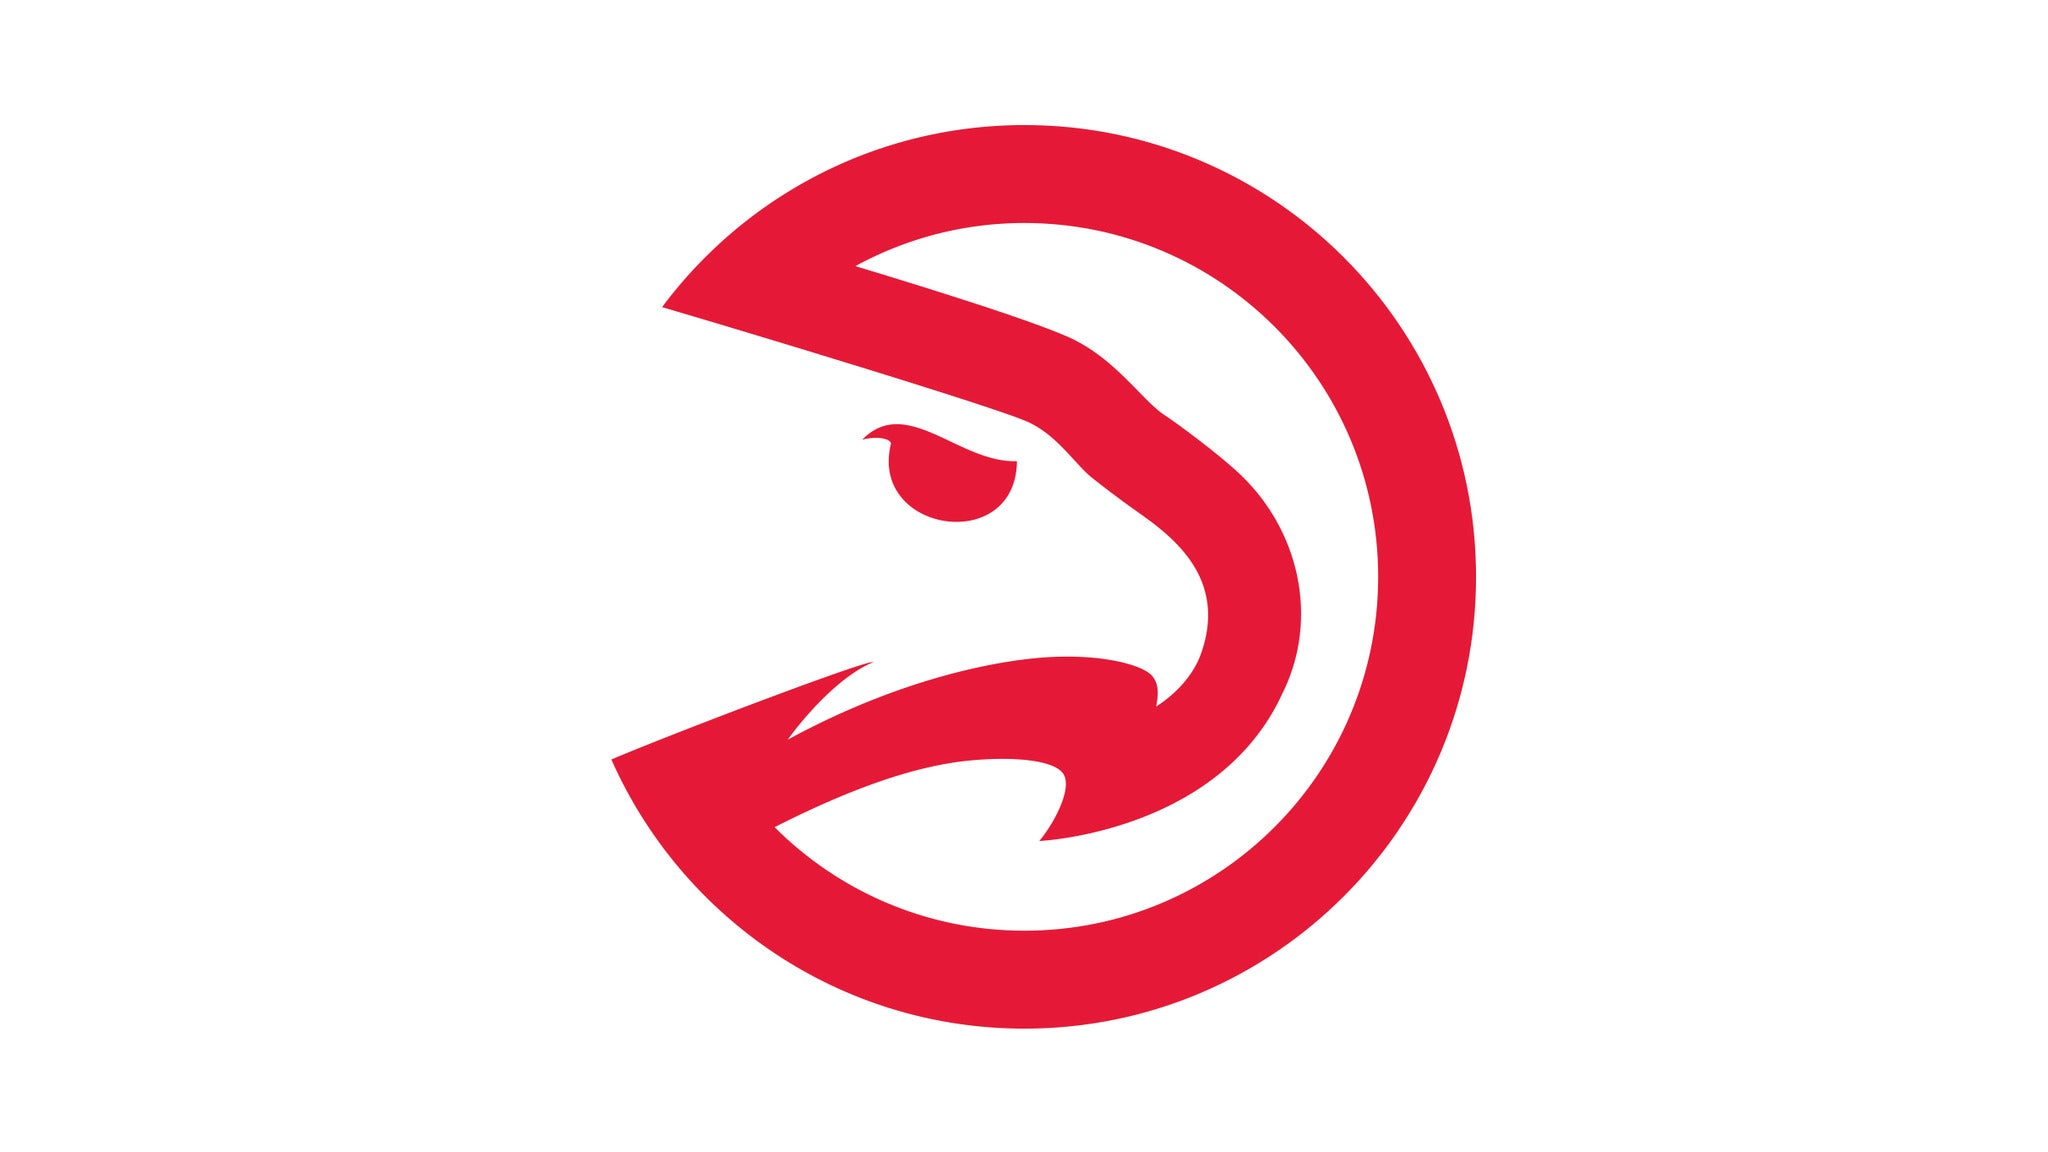 Atlanta Hawks vs. Boston Celtics at State Farm Arena